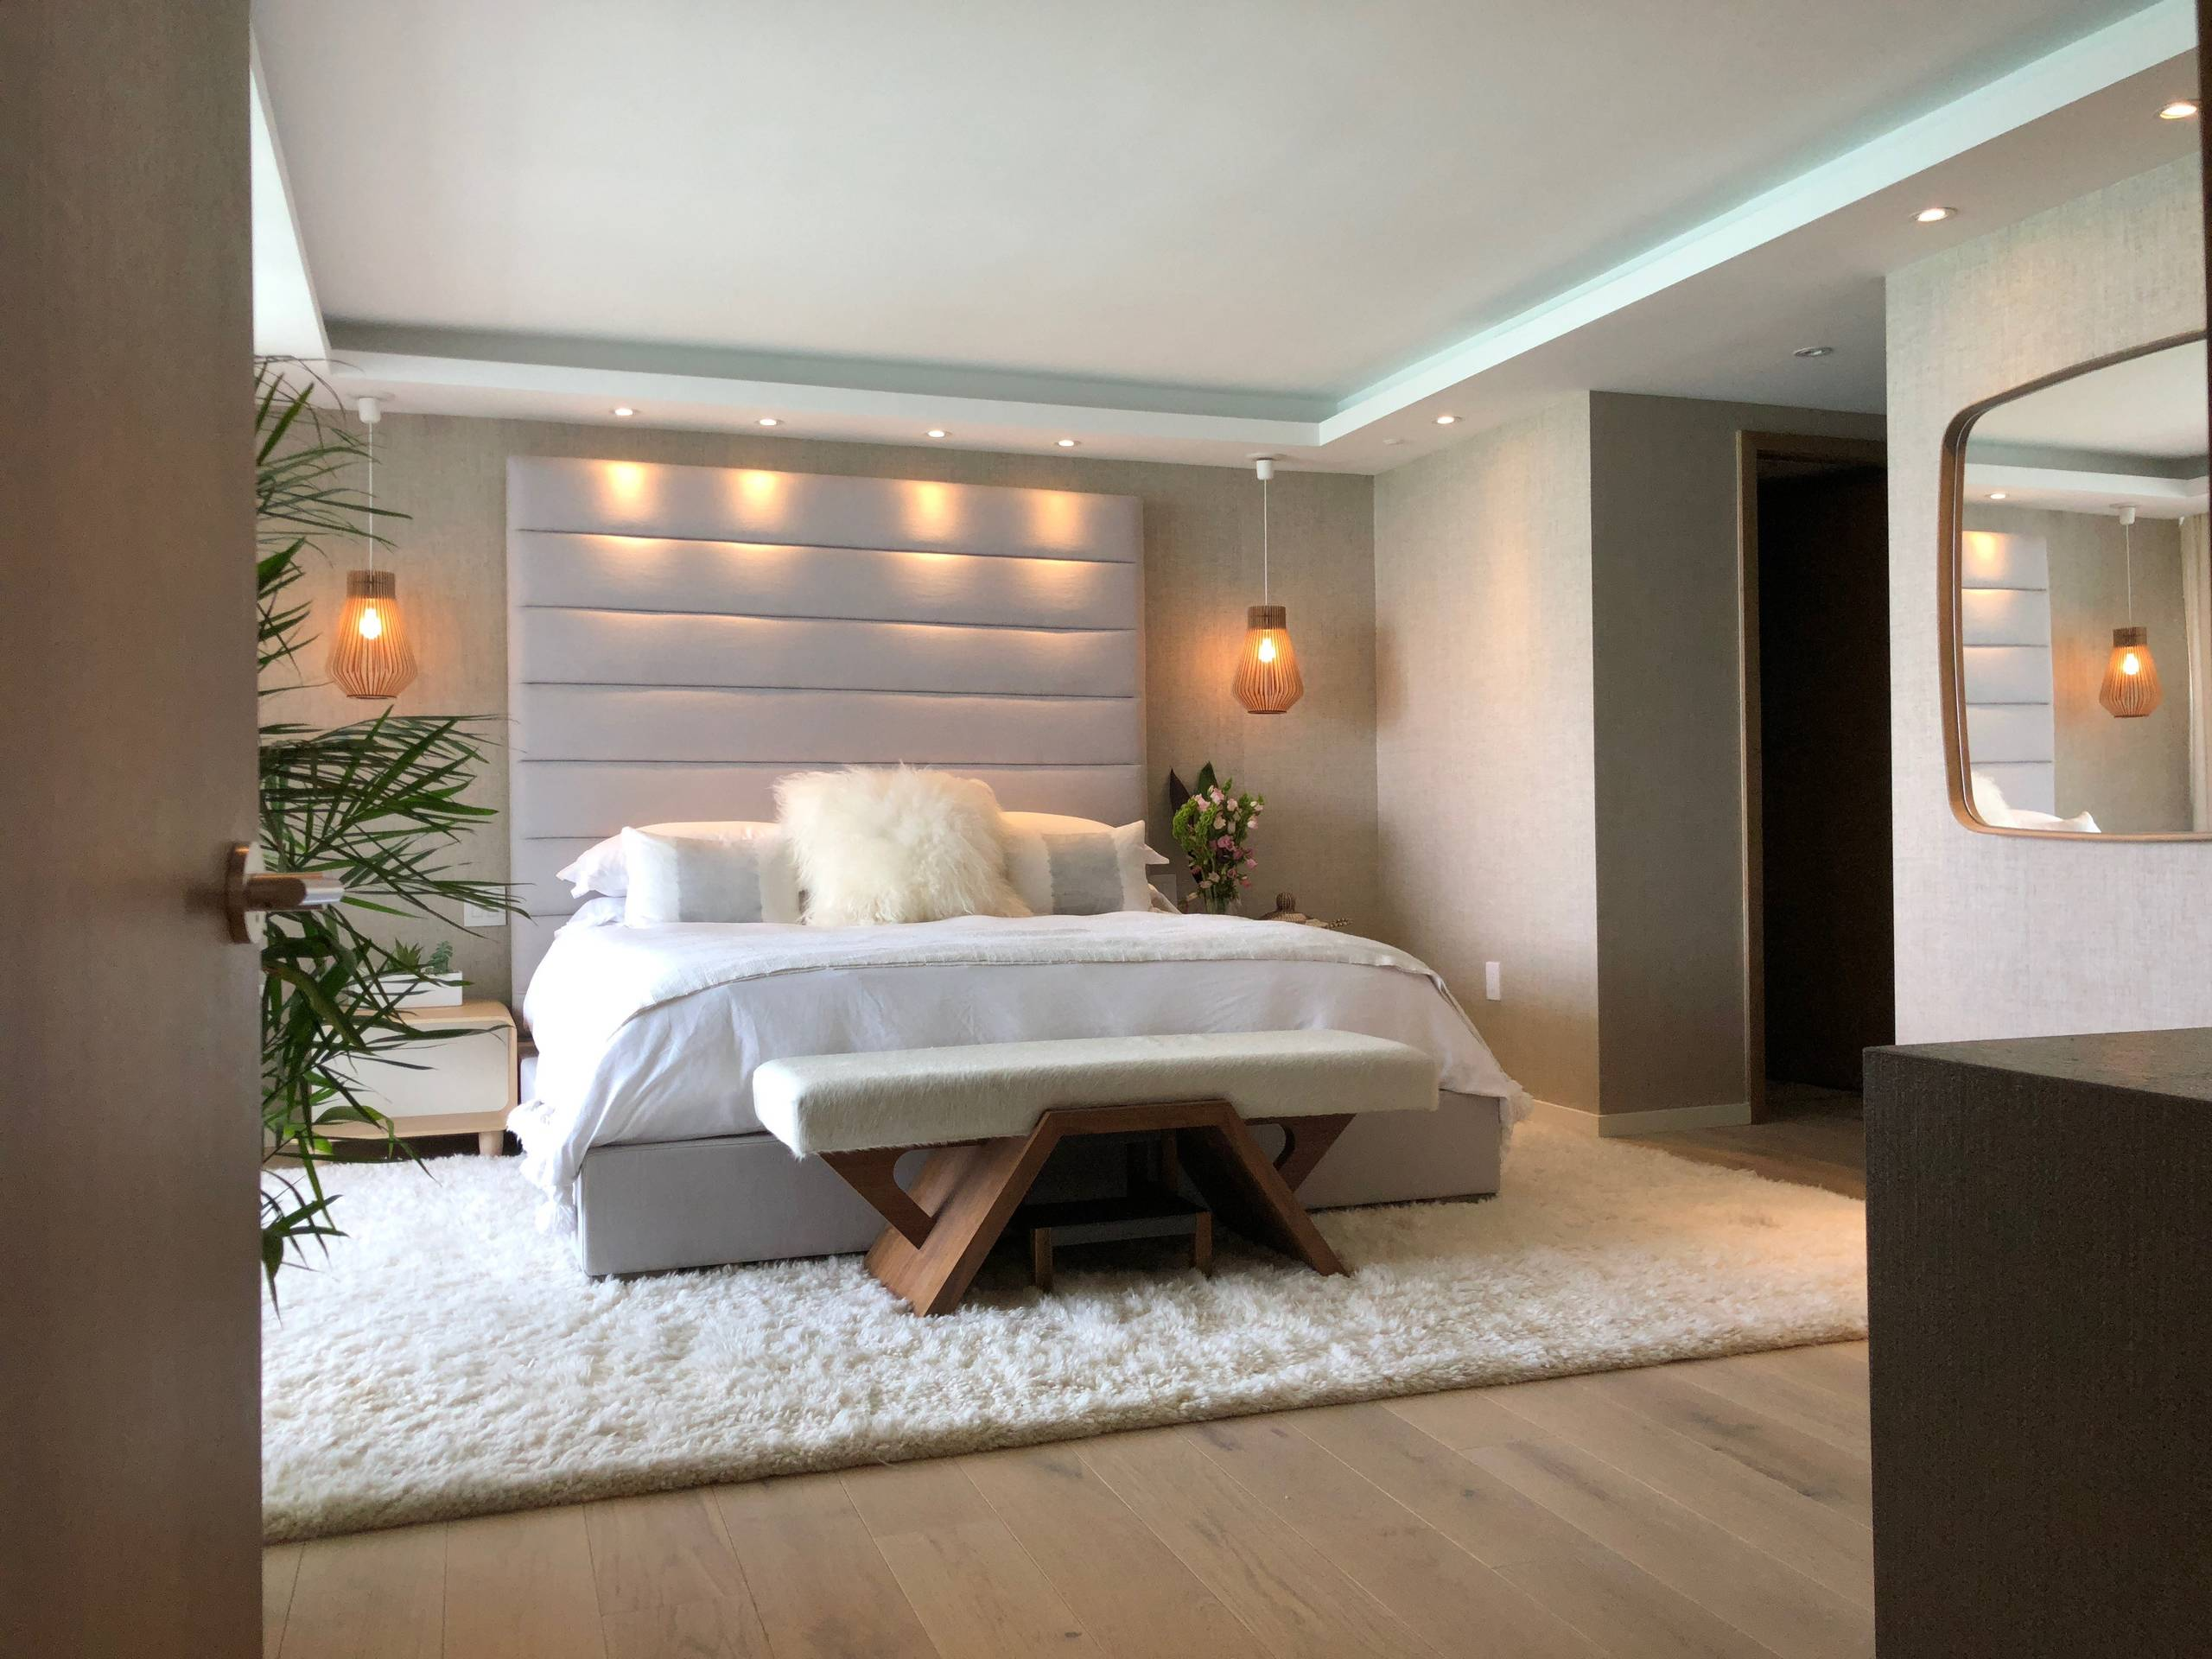 Trendy ideas for bedroom furniture